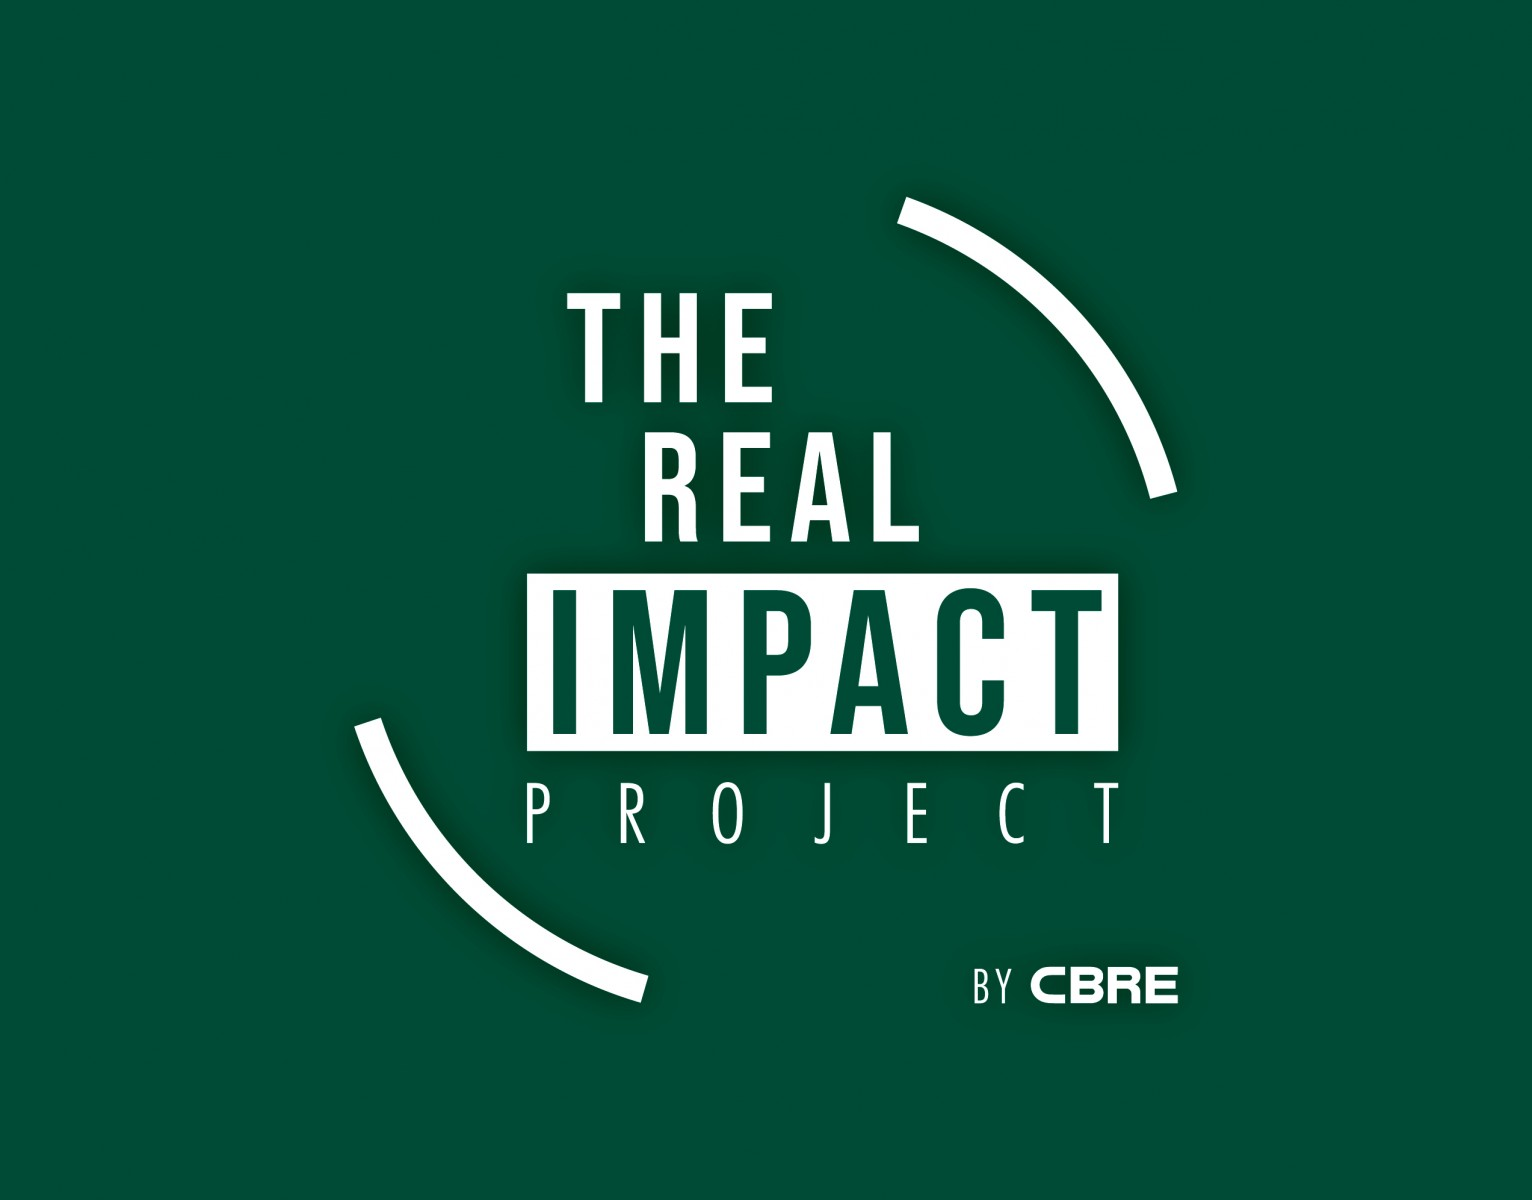 The Real Impact Project Beeldmerk wit-10